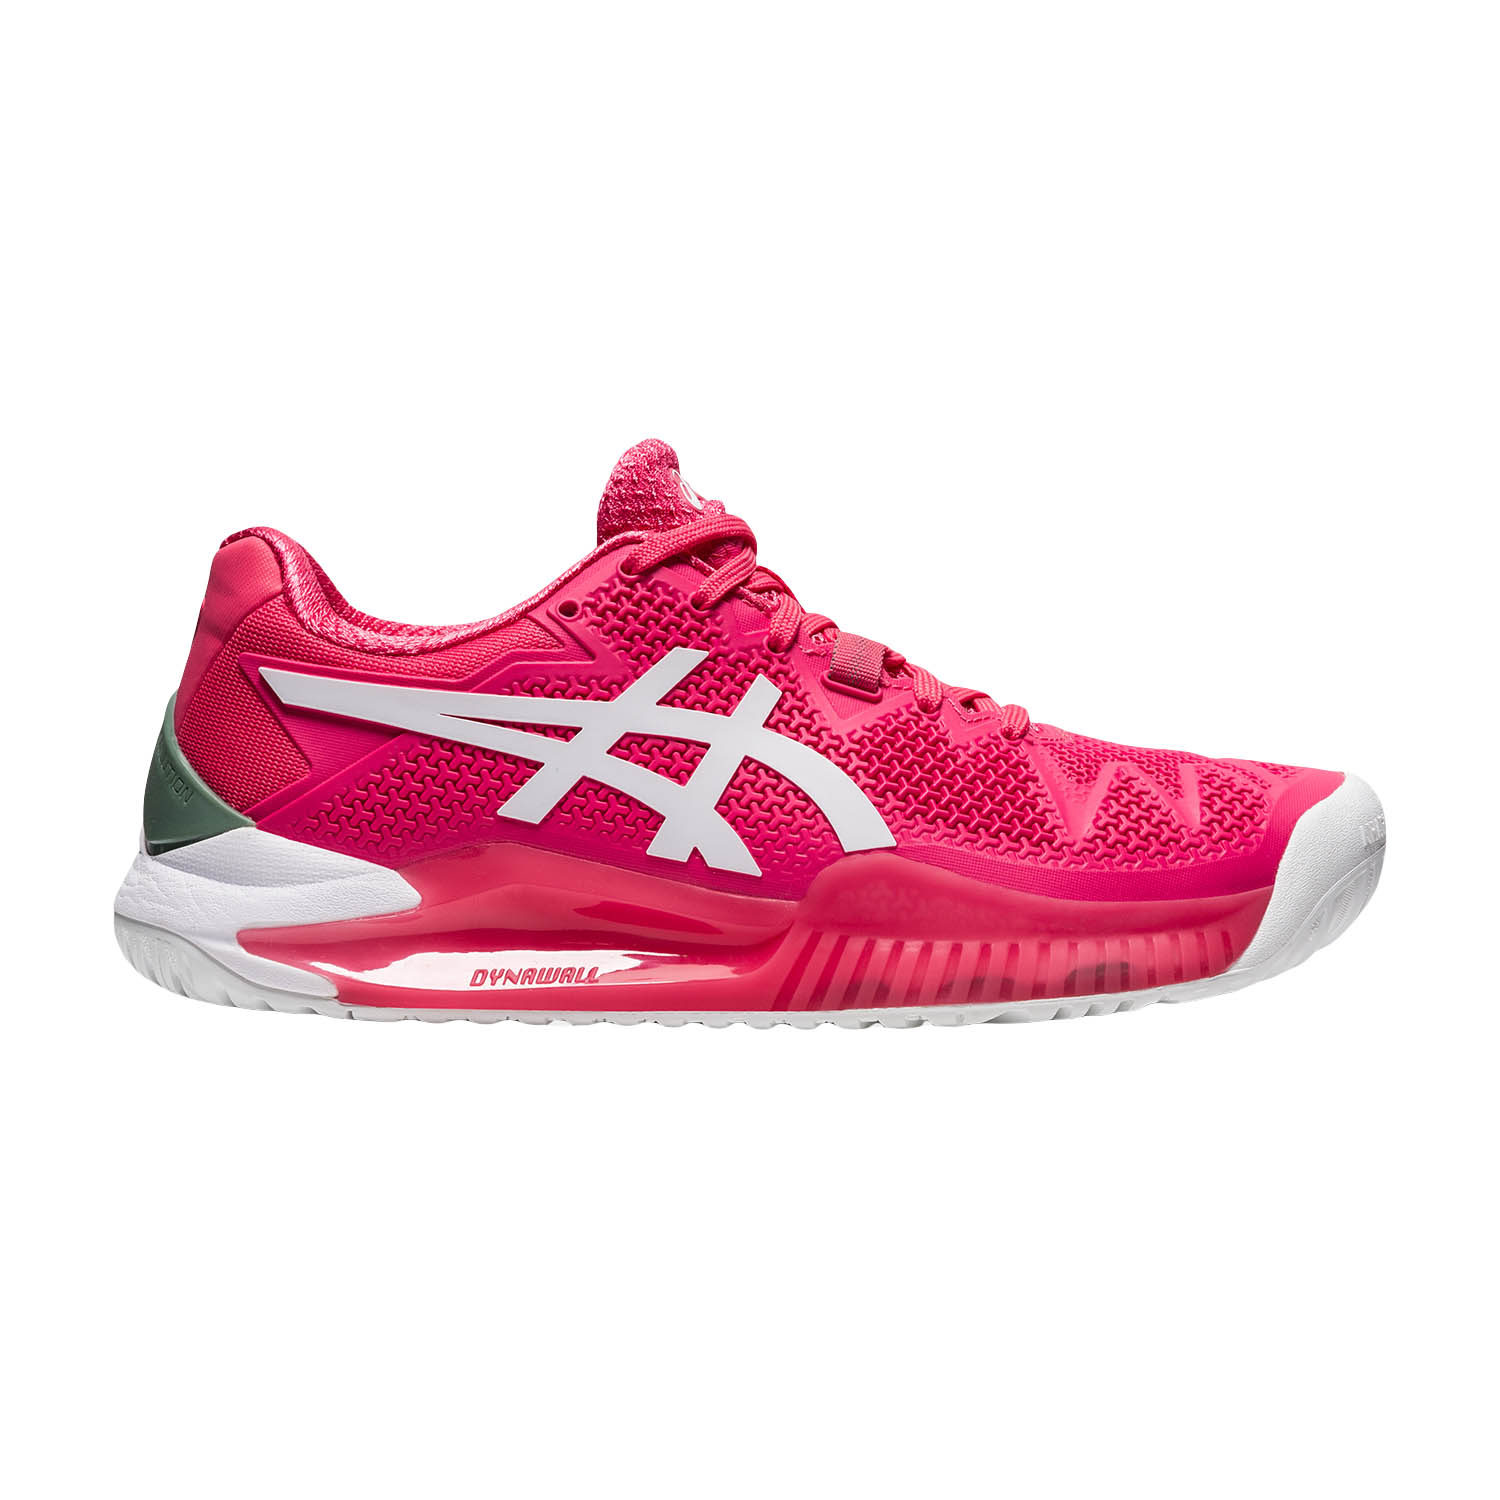 Asics Gel Resolution 8 - Pink Cameo/White